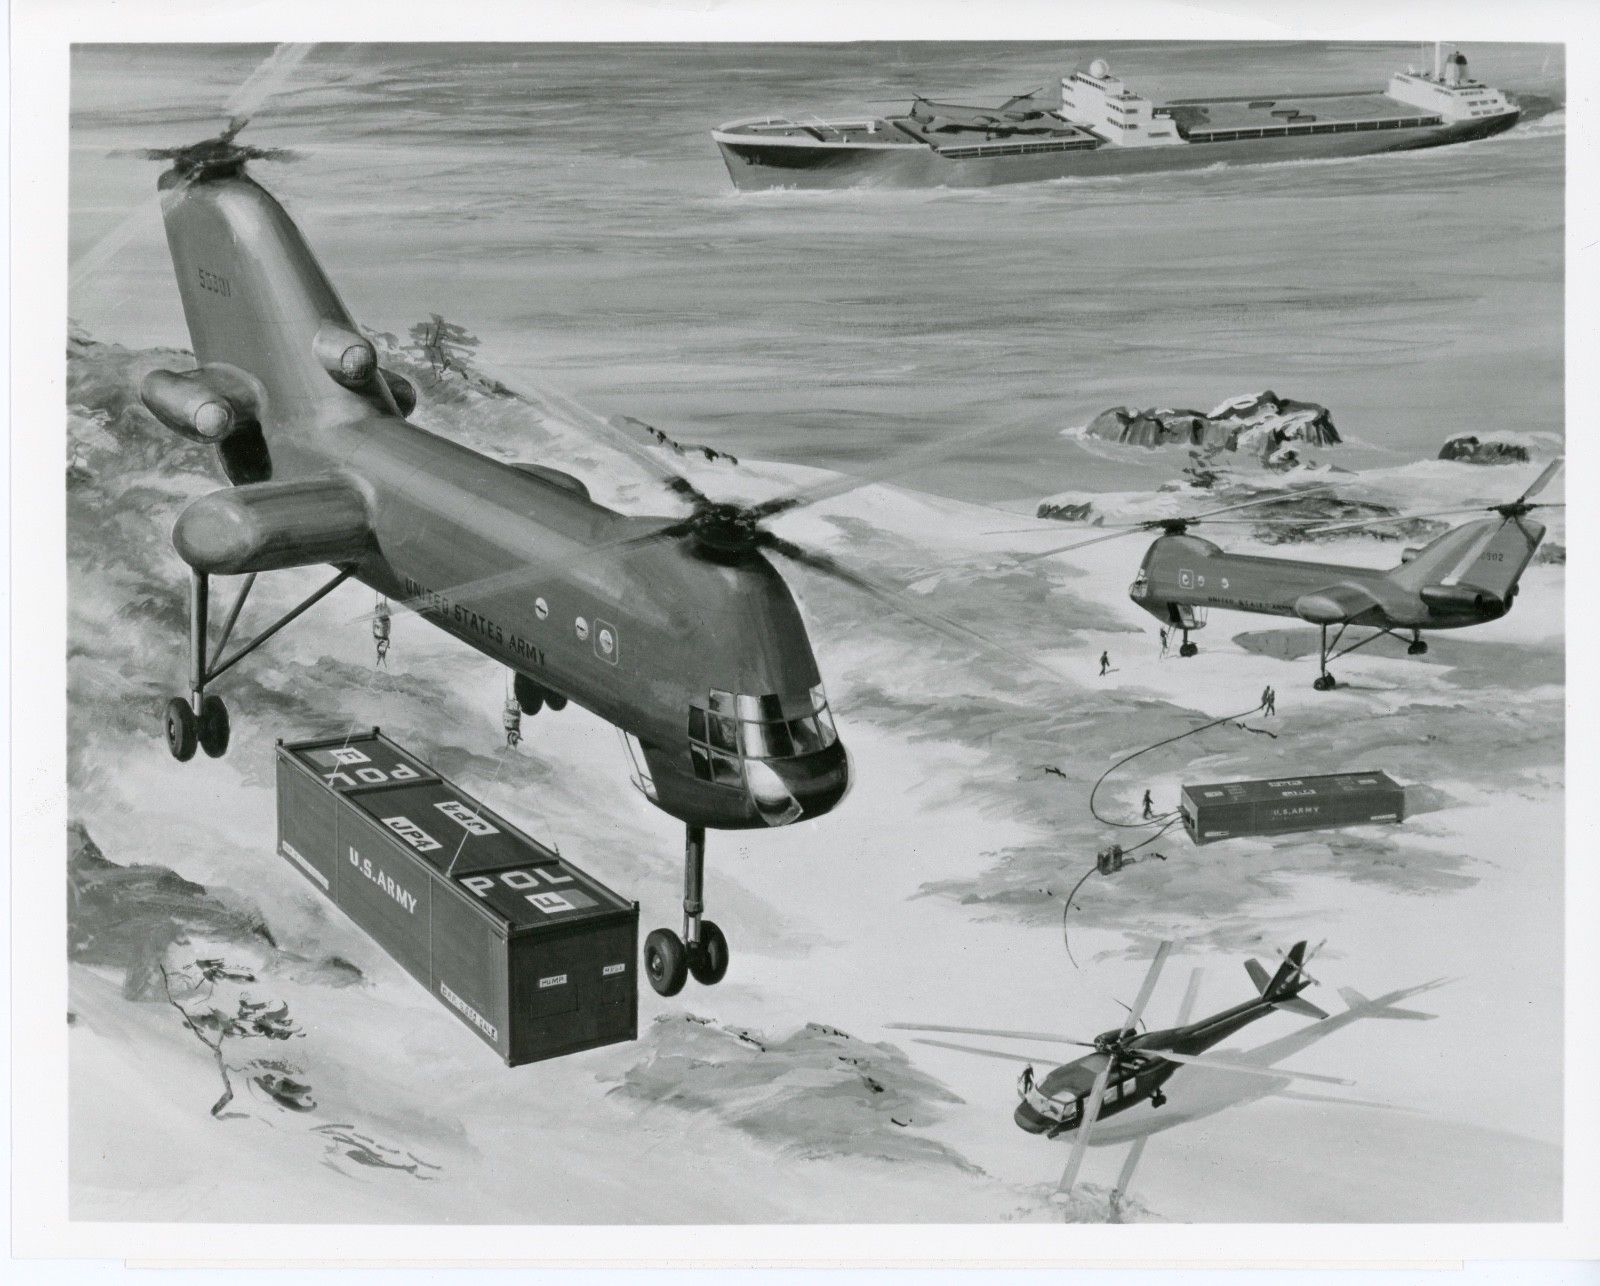 Vtol Aerospace Projects Review Blog Schematic August 1958 American Modeler Airplanes And Rockets This Illustration Shows It Carrying A Standard Shipping Container From Cargo Vessel To Shore The Seems Contain Fuel Its Being Used